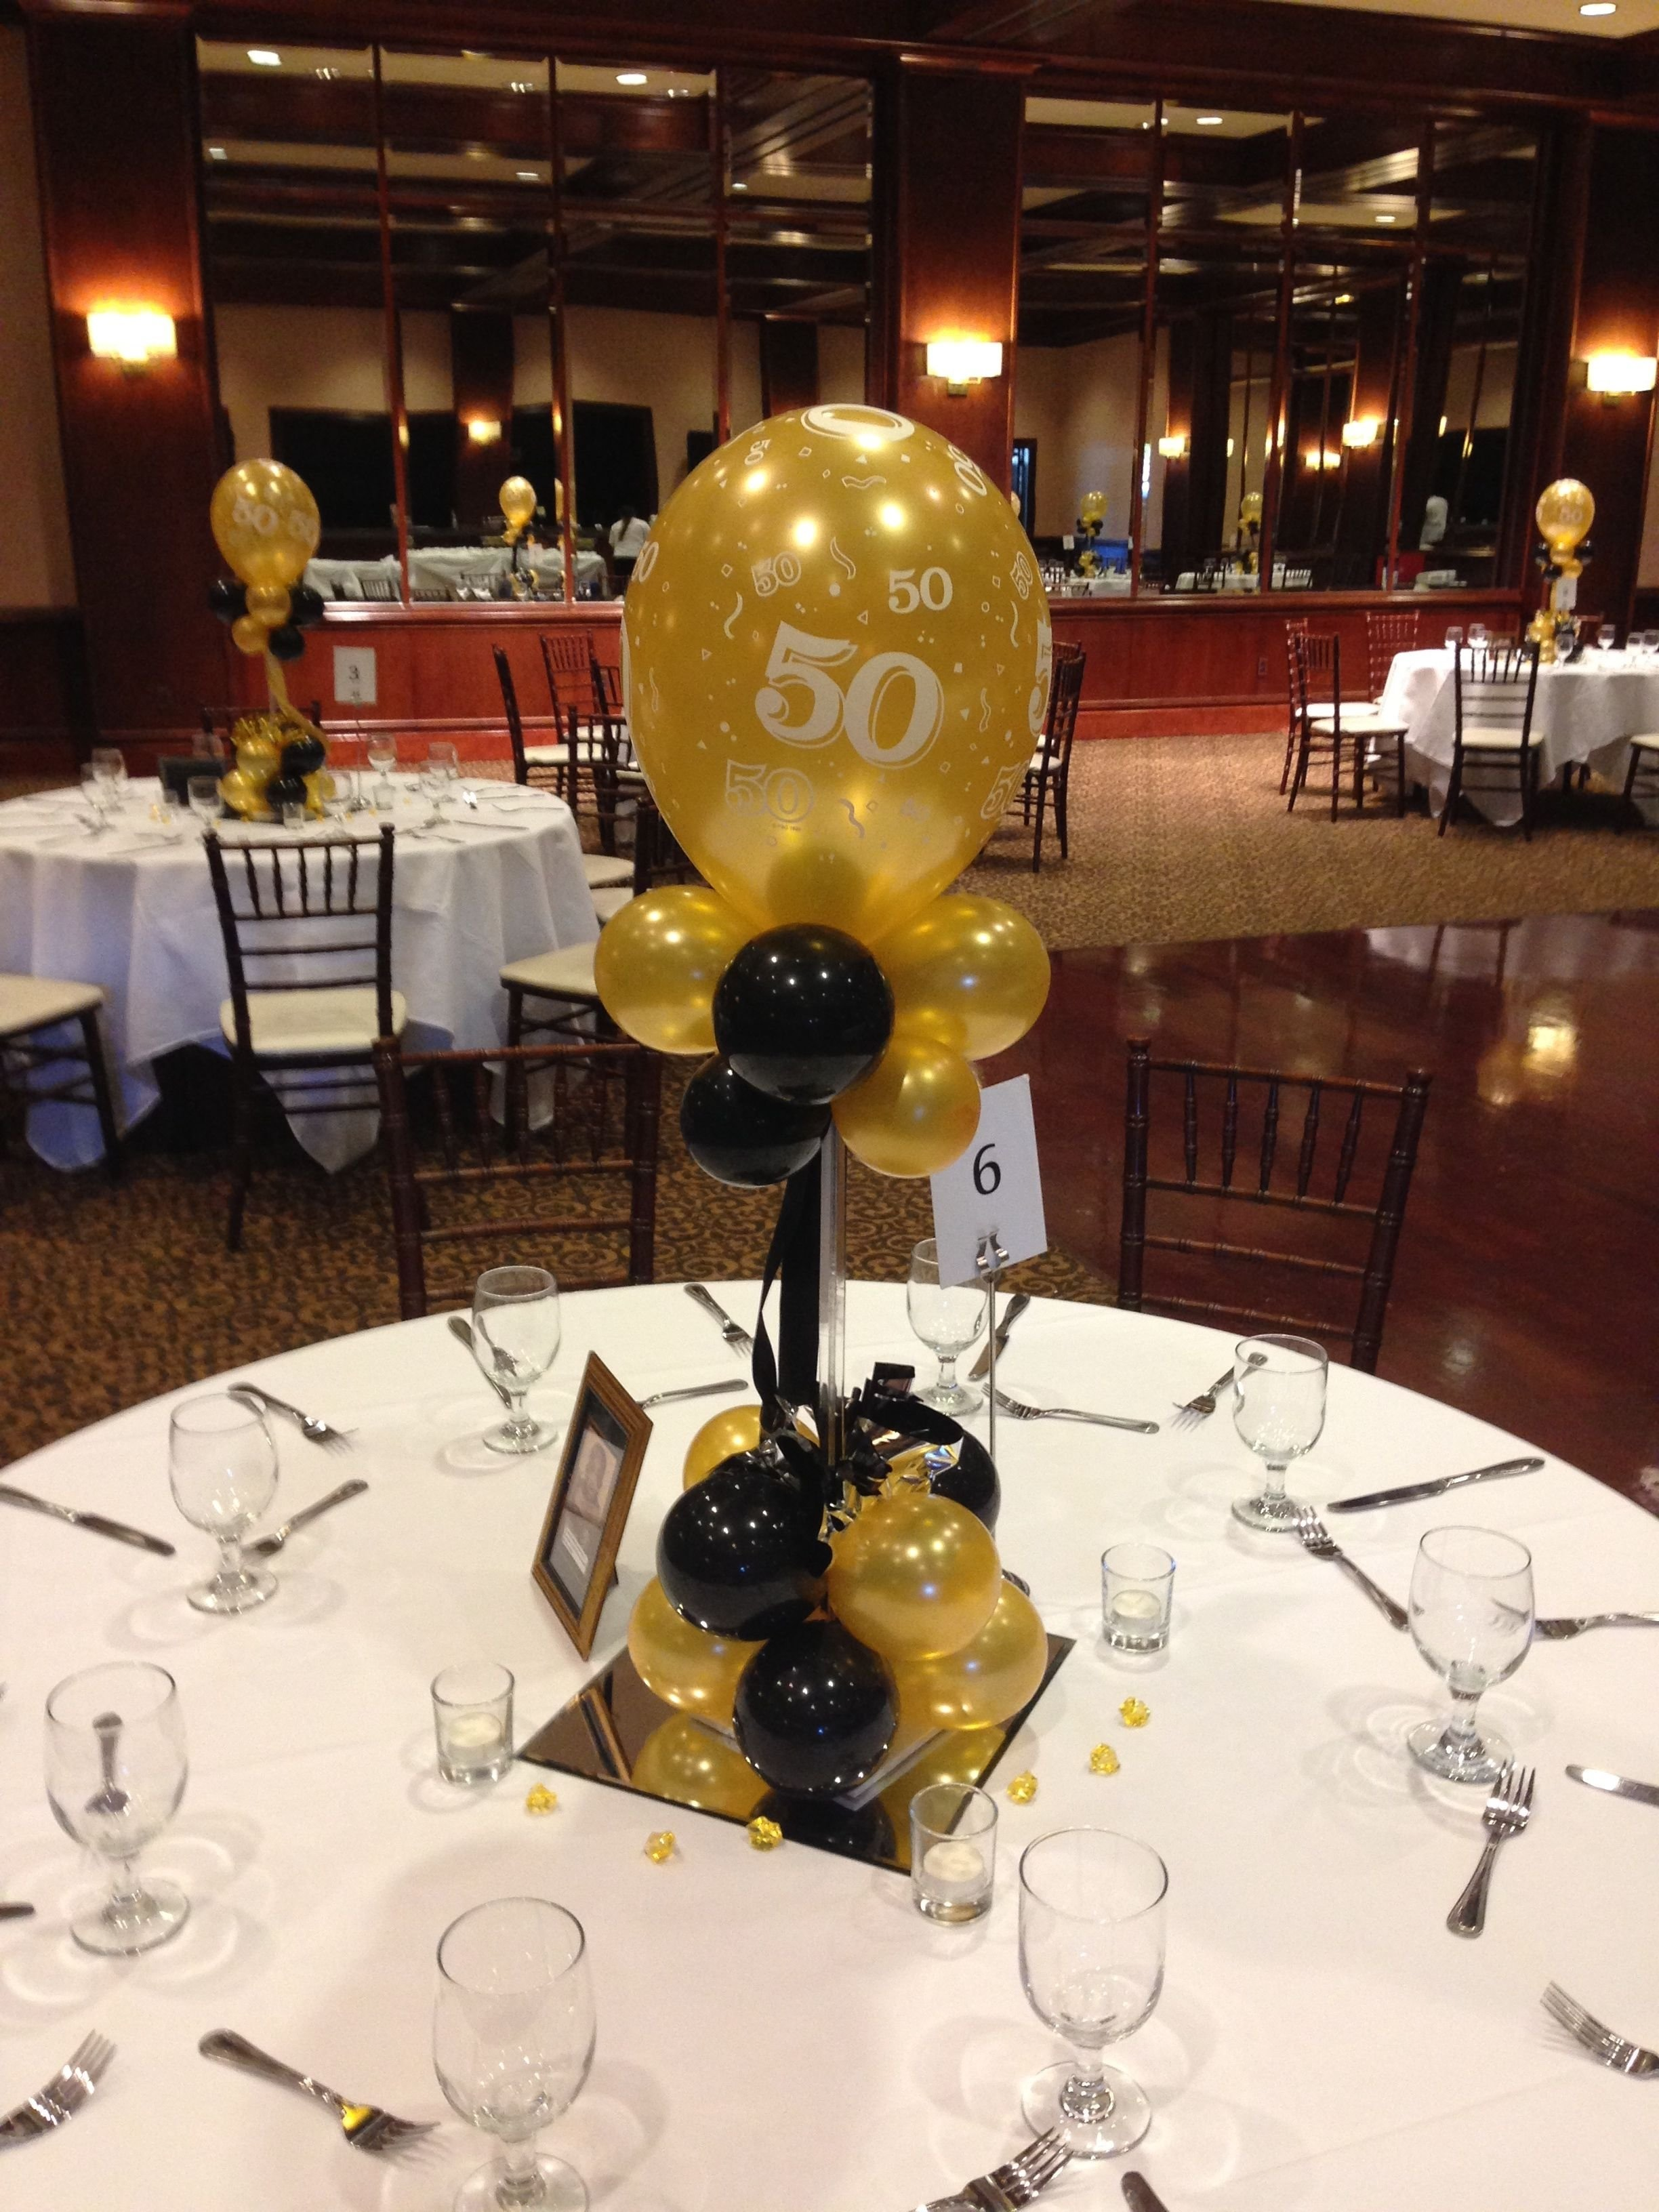 10 Most Recommended Black And Gold Centerpiece Ideas black and gold balloon centerpieces for a 50th birthday or 7 2020